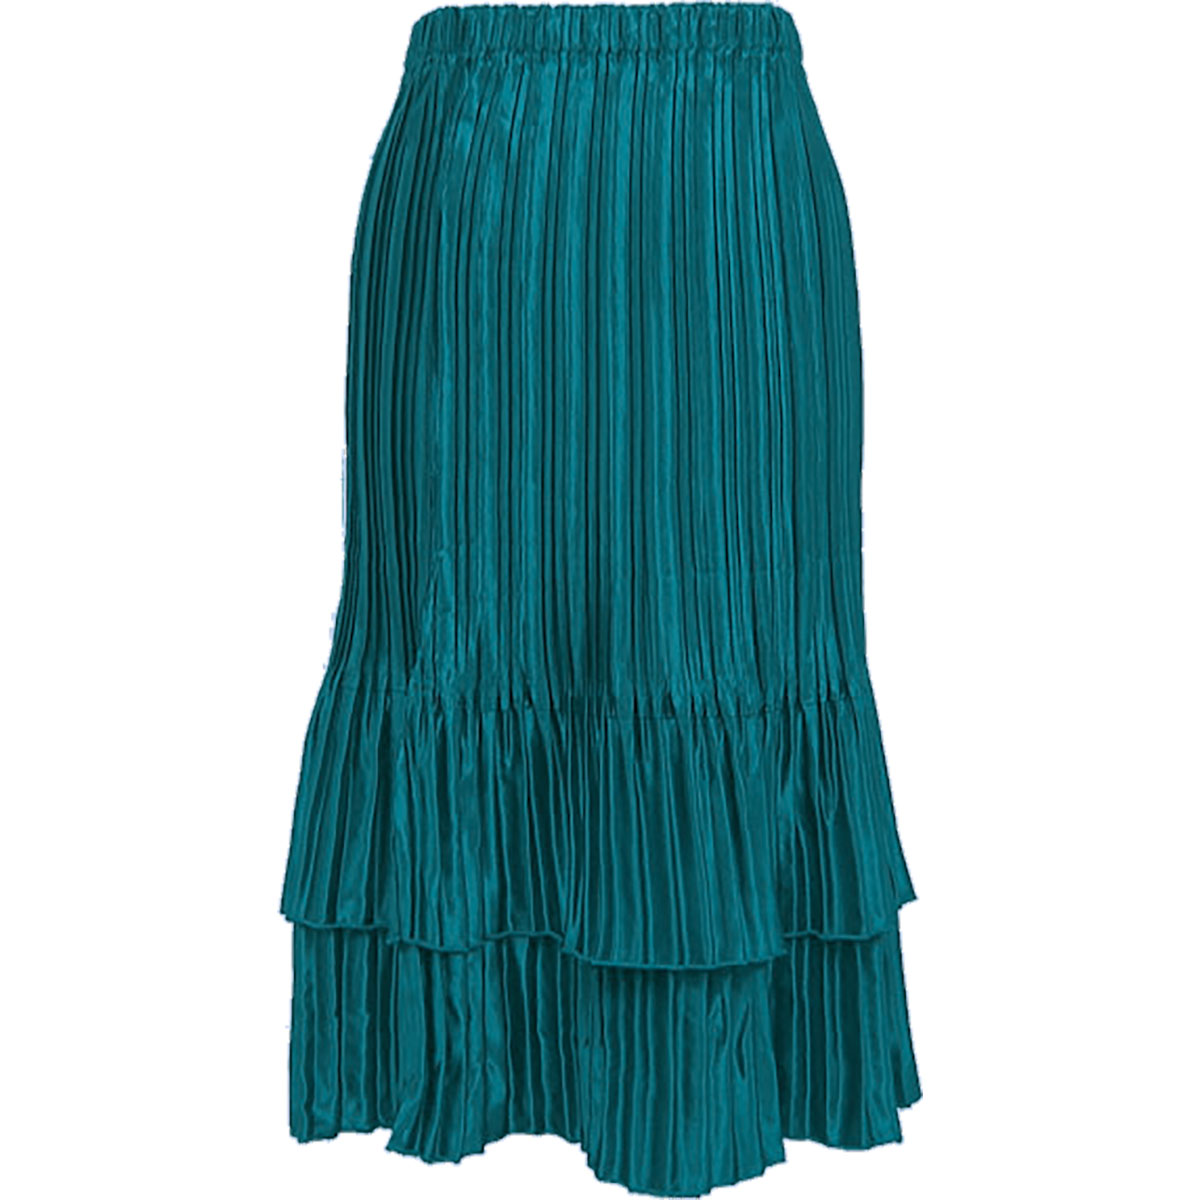 Wholesale Skirts - Satin Mini Pleat Tiered* Solid Dark Turquoise  - One Size (S-XL)